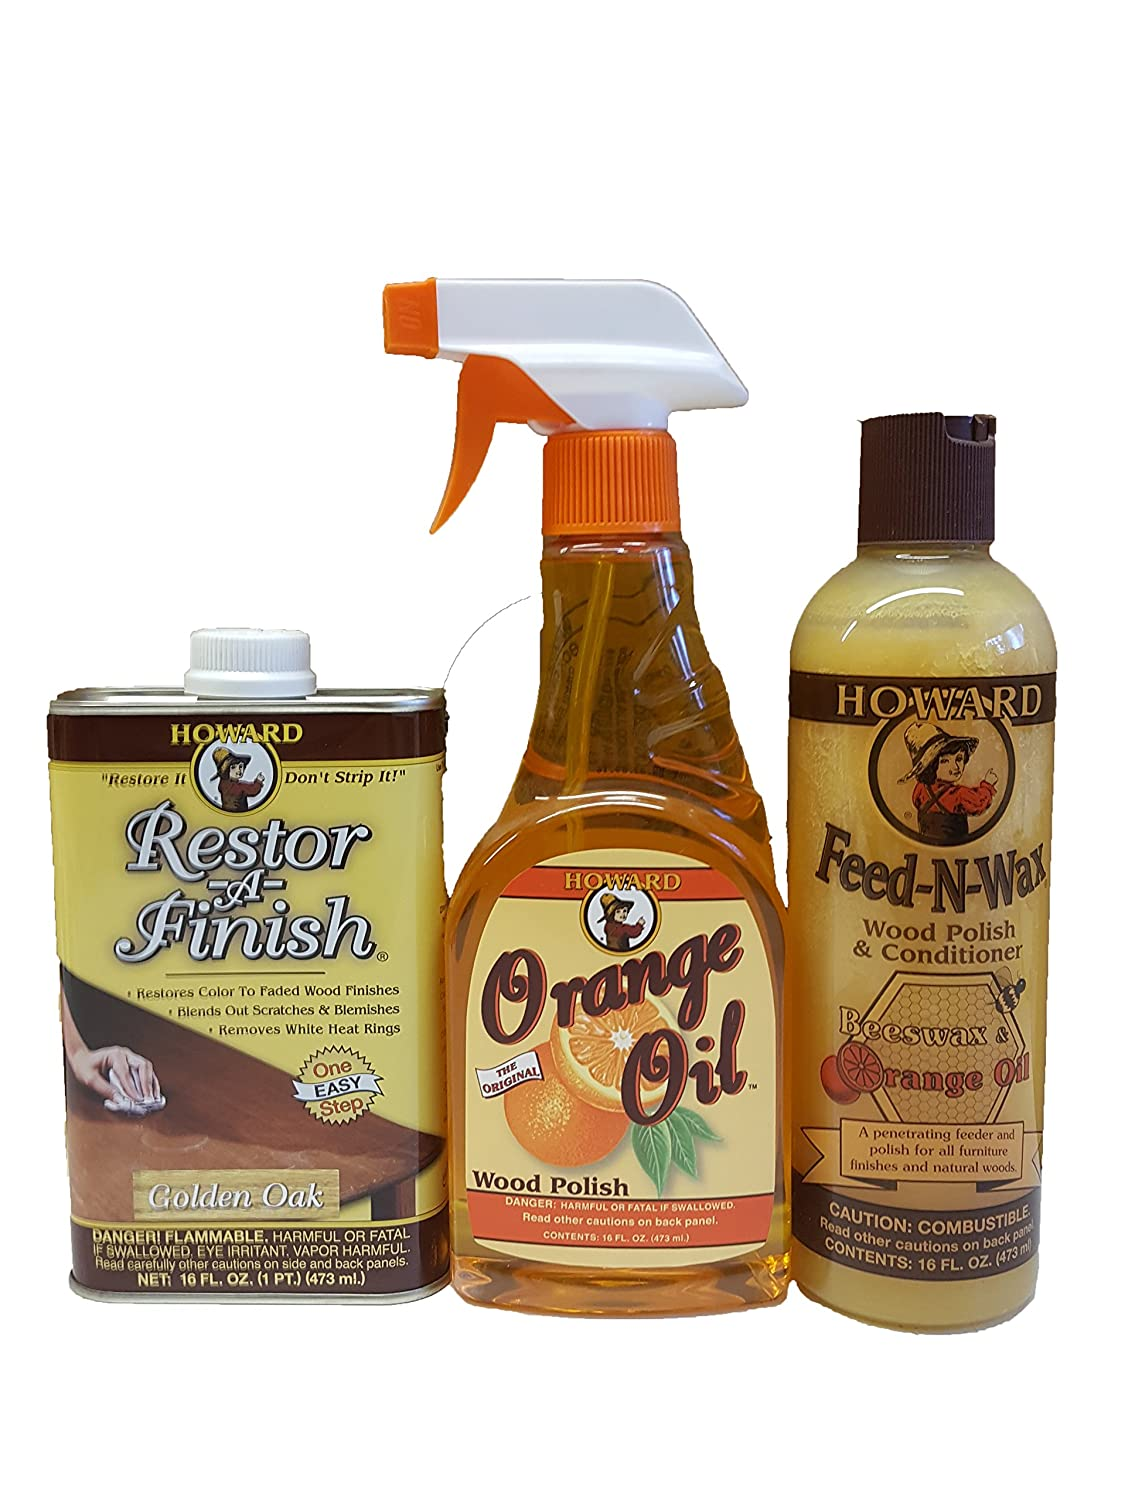 Magnificent Howard Complete Wood Restoration Kit Clean Protect And Restore Wood Finishes Wood Floors Kitchen Cabinets Wood Furniture Golden Oak Download Free Architecture Designs Scobabritishbridgeorg